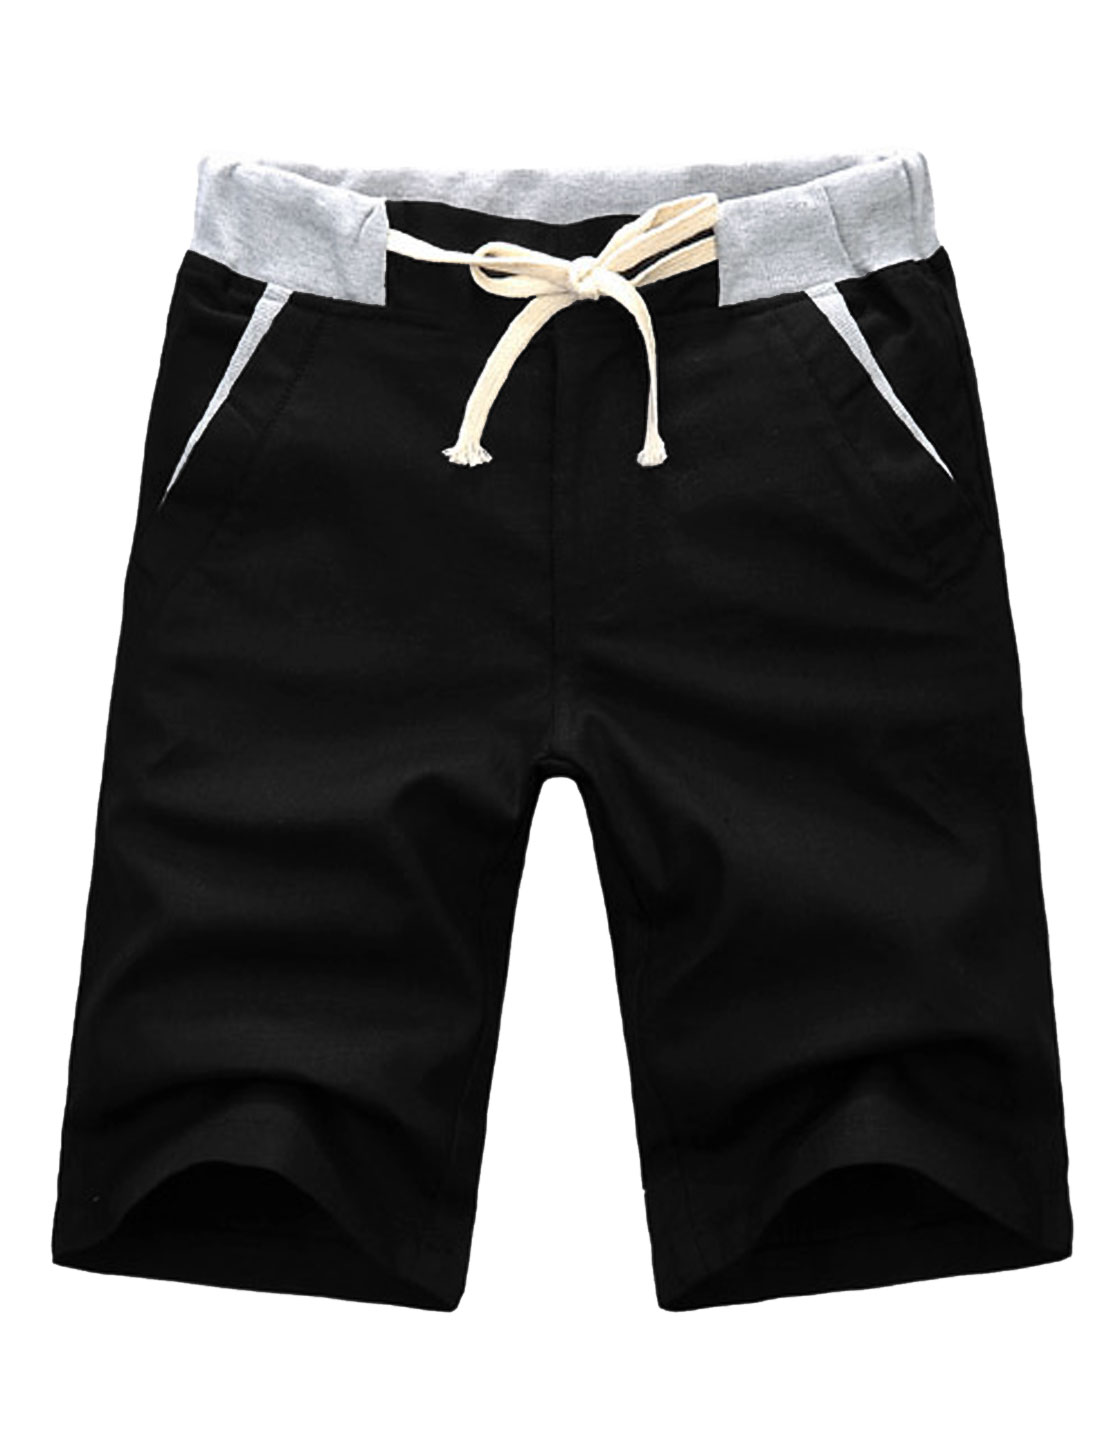 Men Mid Rise Front Pockets Drawstring Waist Shorts Black W36